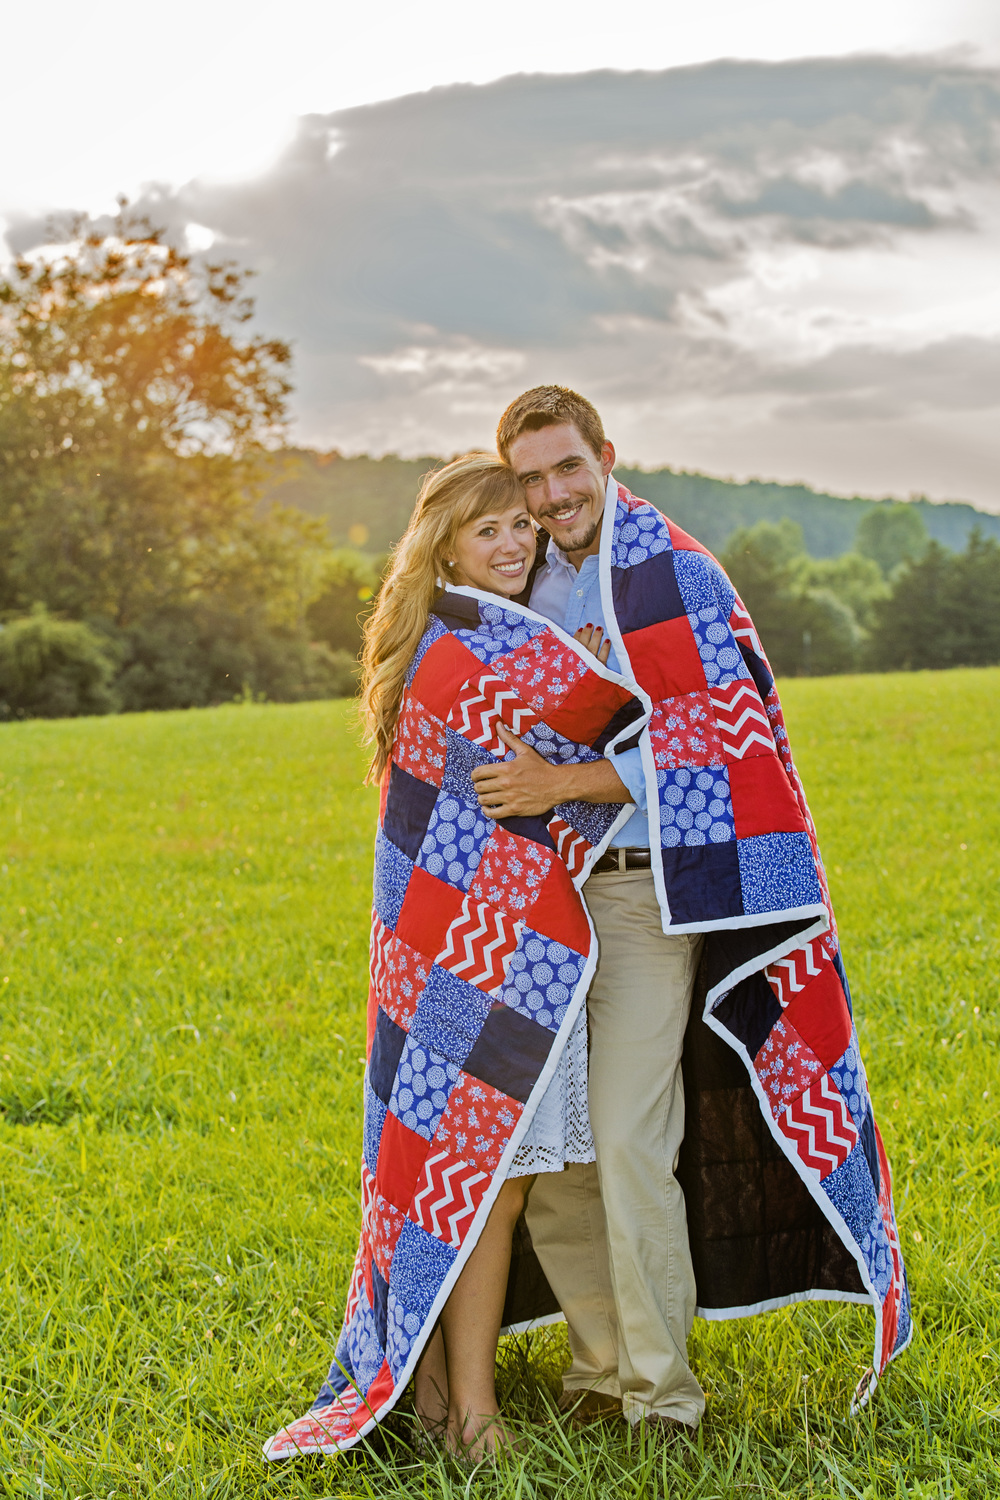 garden_dock_quilt_fun_engagement_session_lynchburg_va020.jpg